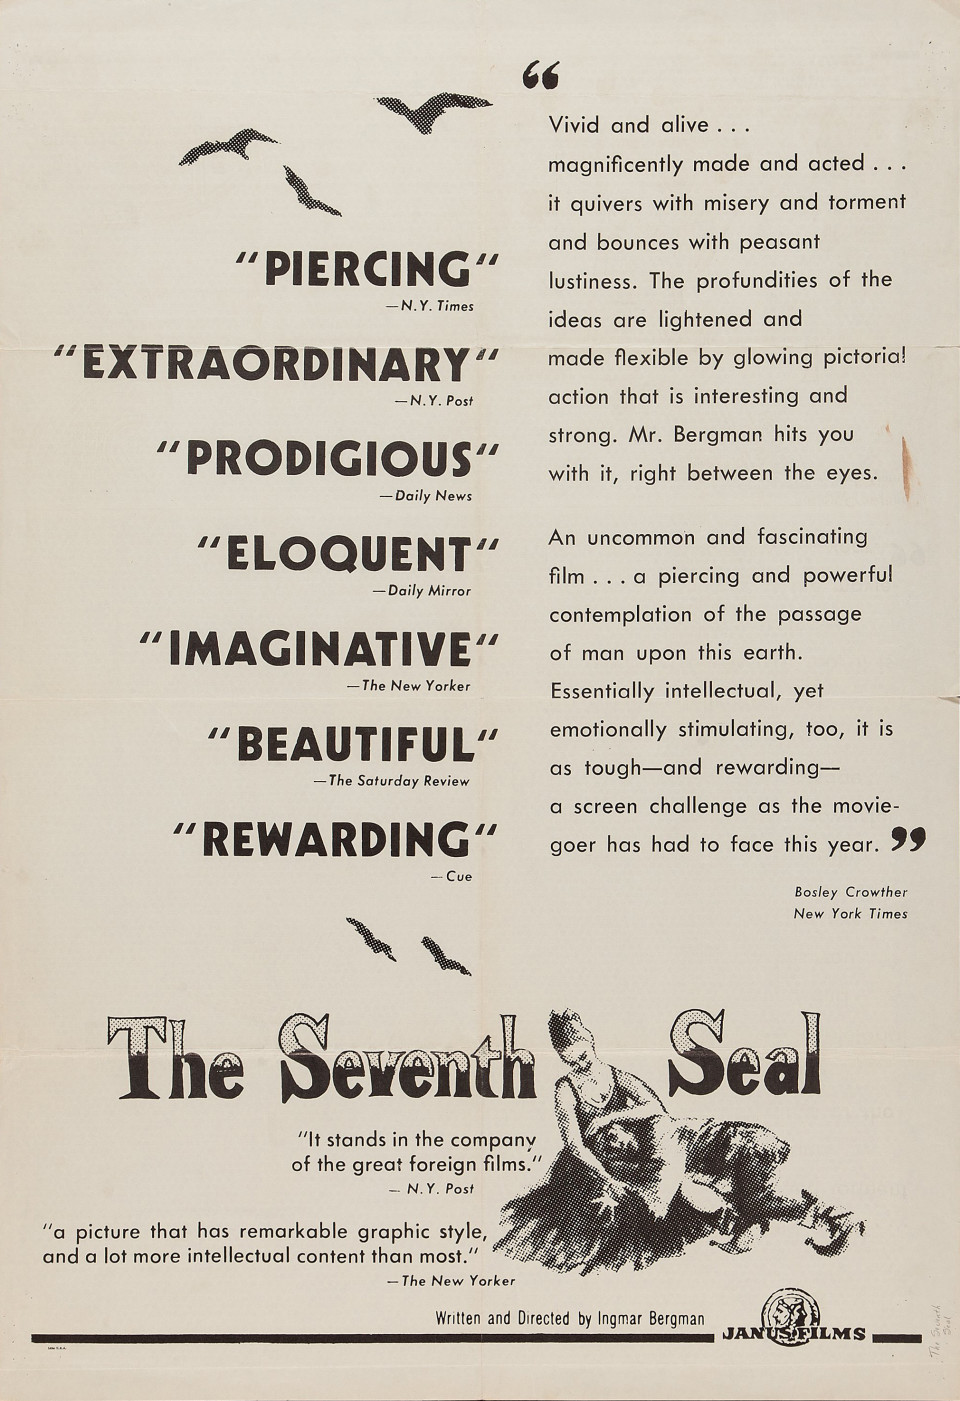 02-1958-Seventh Seal-one sheet